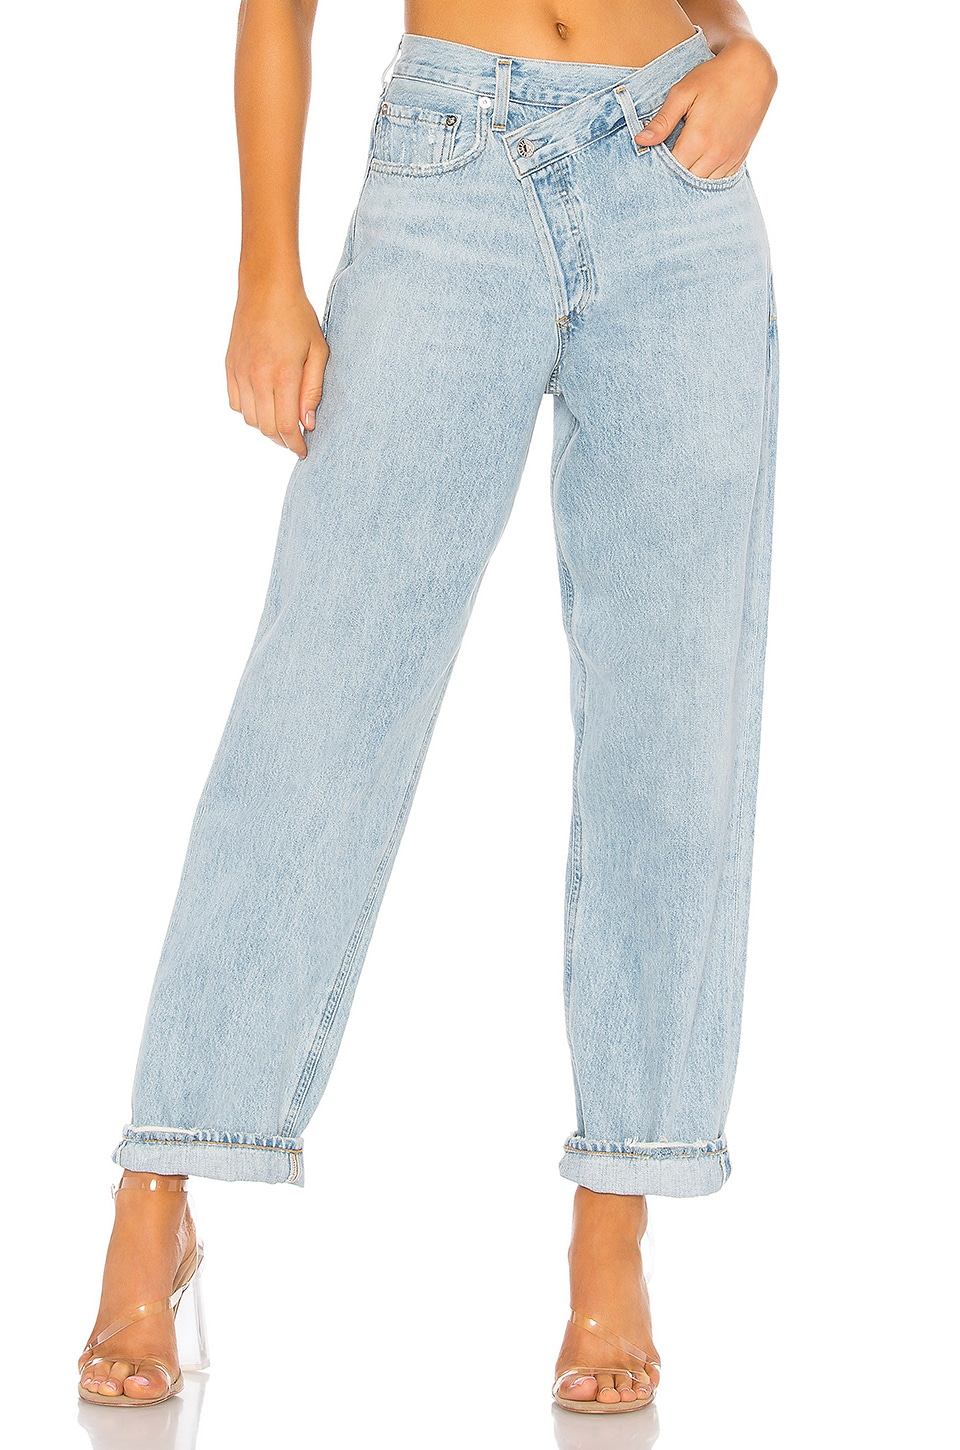 Criss Cross Upsized Jean             AGOLDE                                                                                                       CA$ 254.00 3